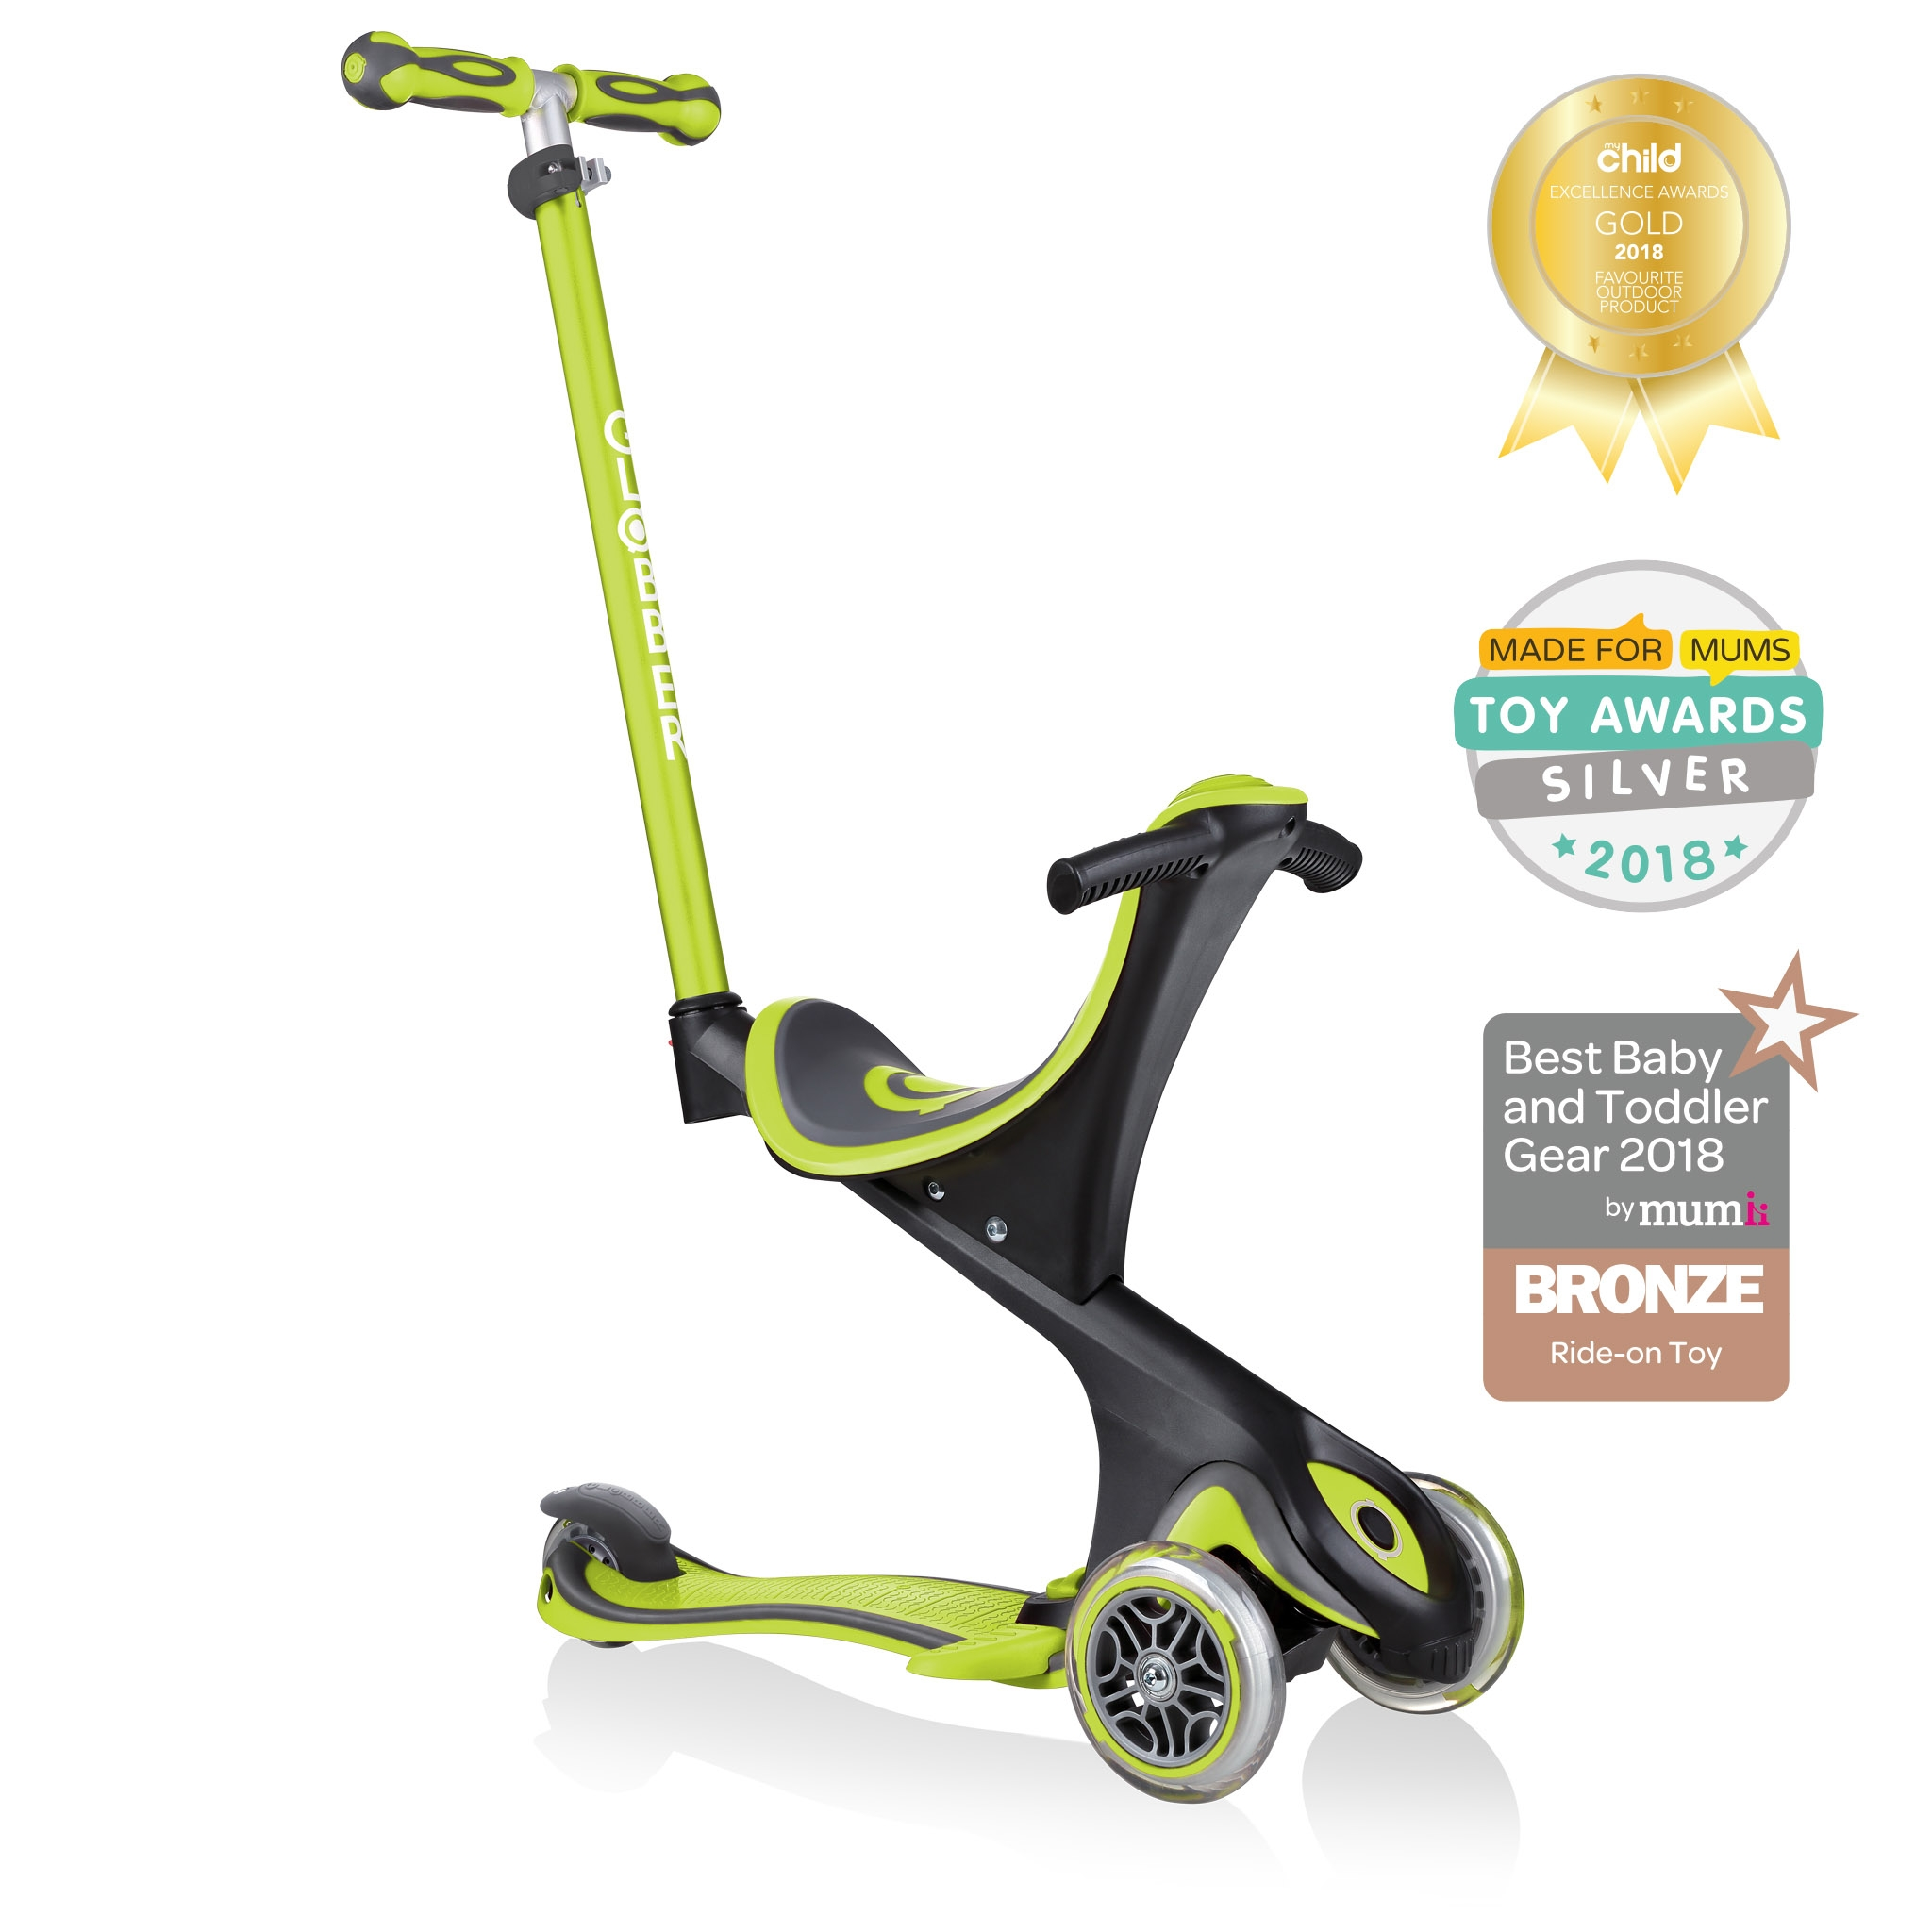 GO-UP-COMFORT-scooter-with-seat-with-extra-wide-seat-lime-green 0